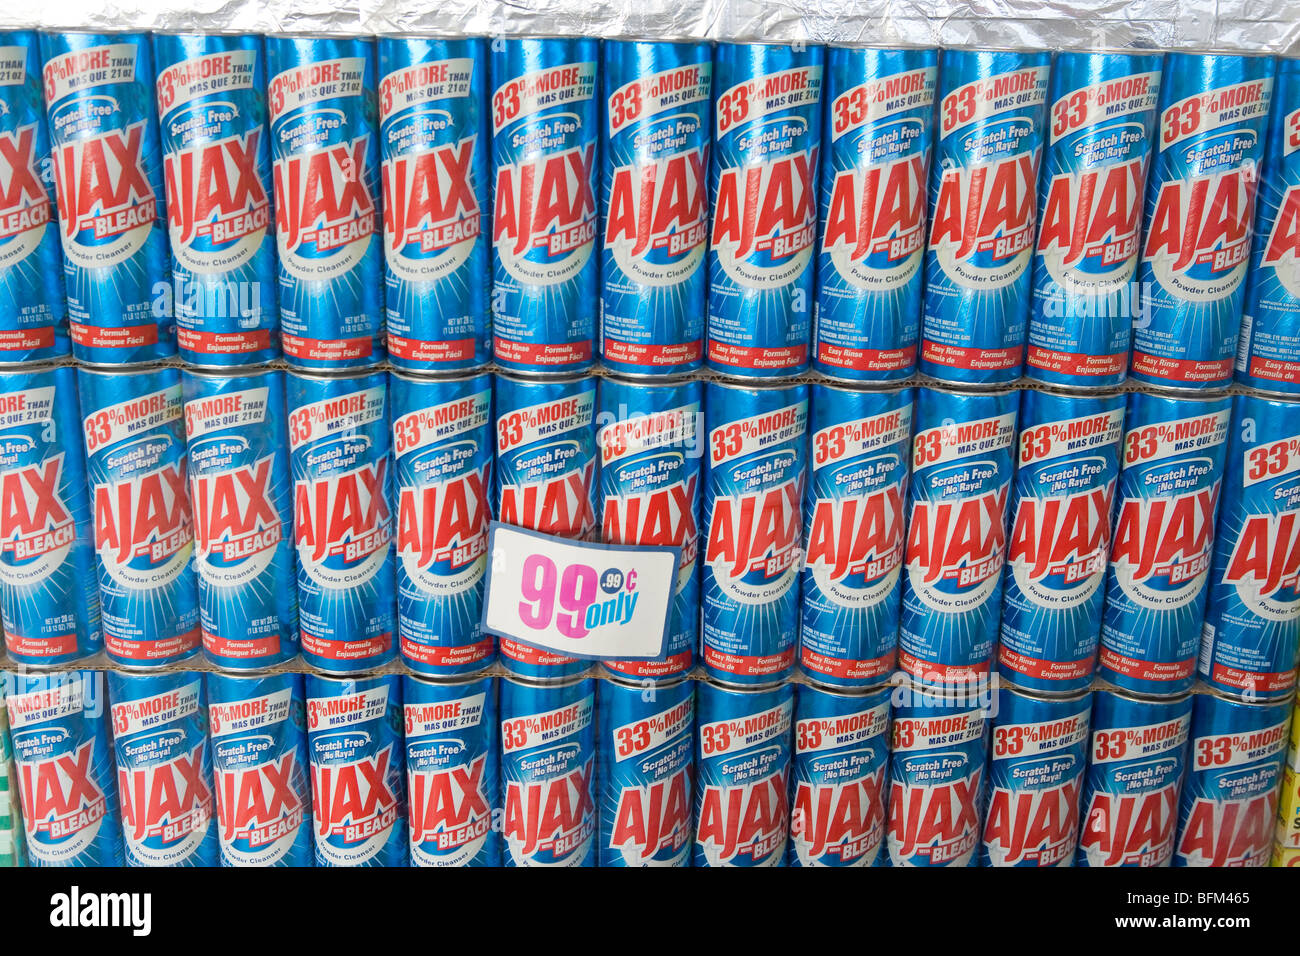 99 Cent Store Ninety Nine Dollar Ajax Cleaning Supply Cleanser Cheap Many Rows Of Product American Brand Name